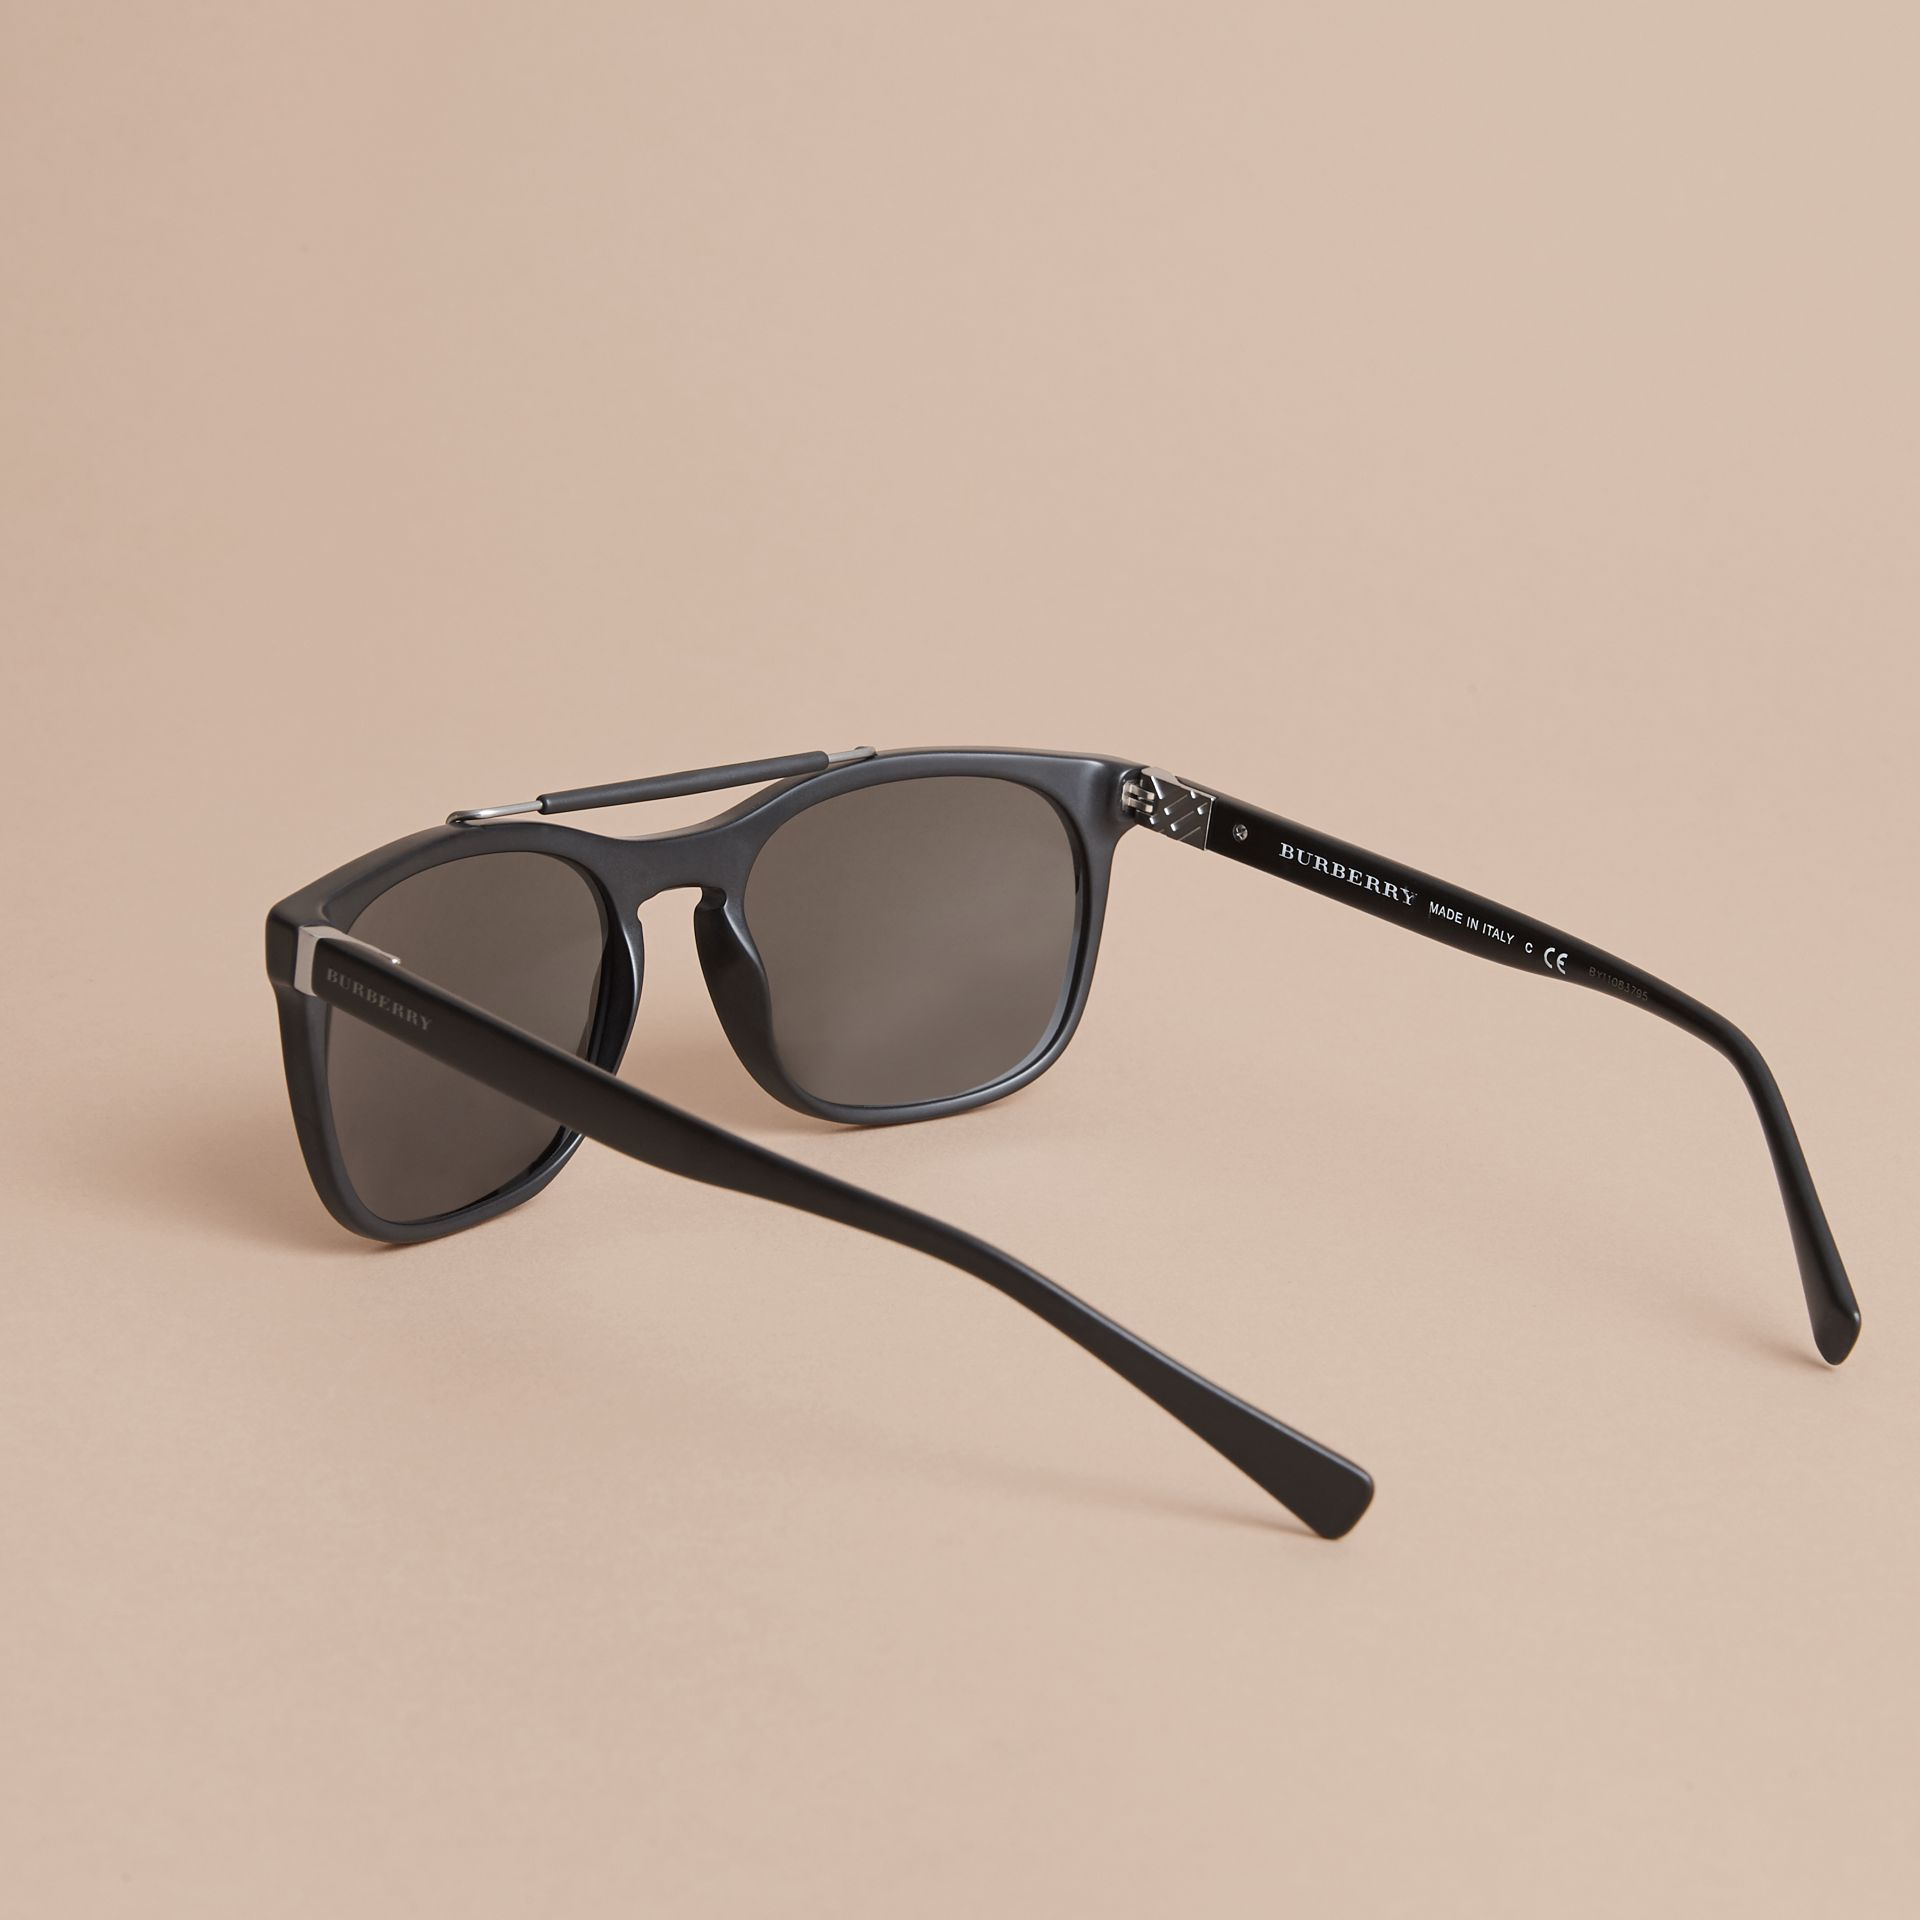 Top Bar Square Frame Sunglasses in Black - Men | Burberry - gallery image 4